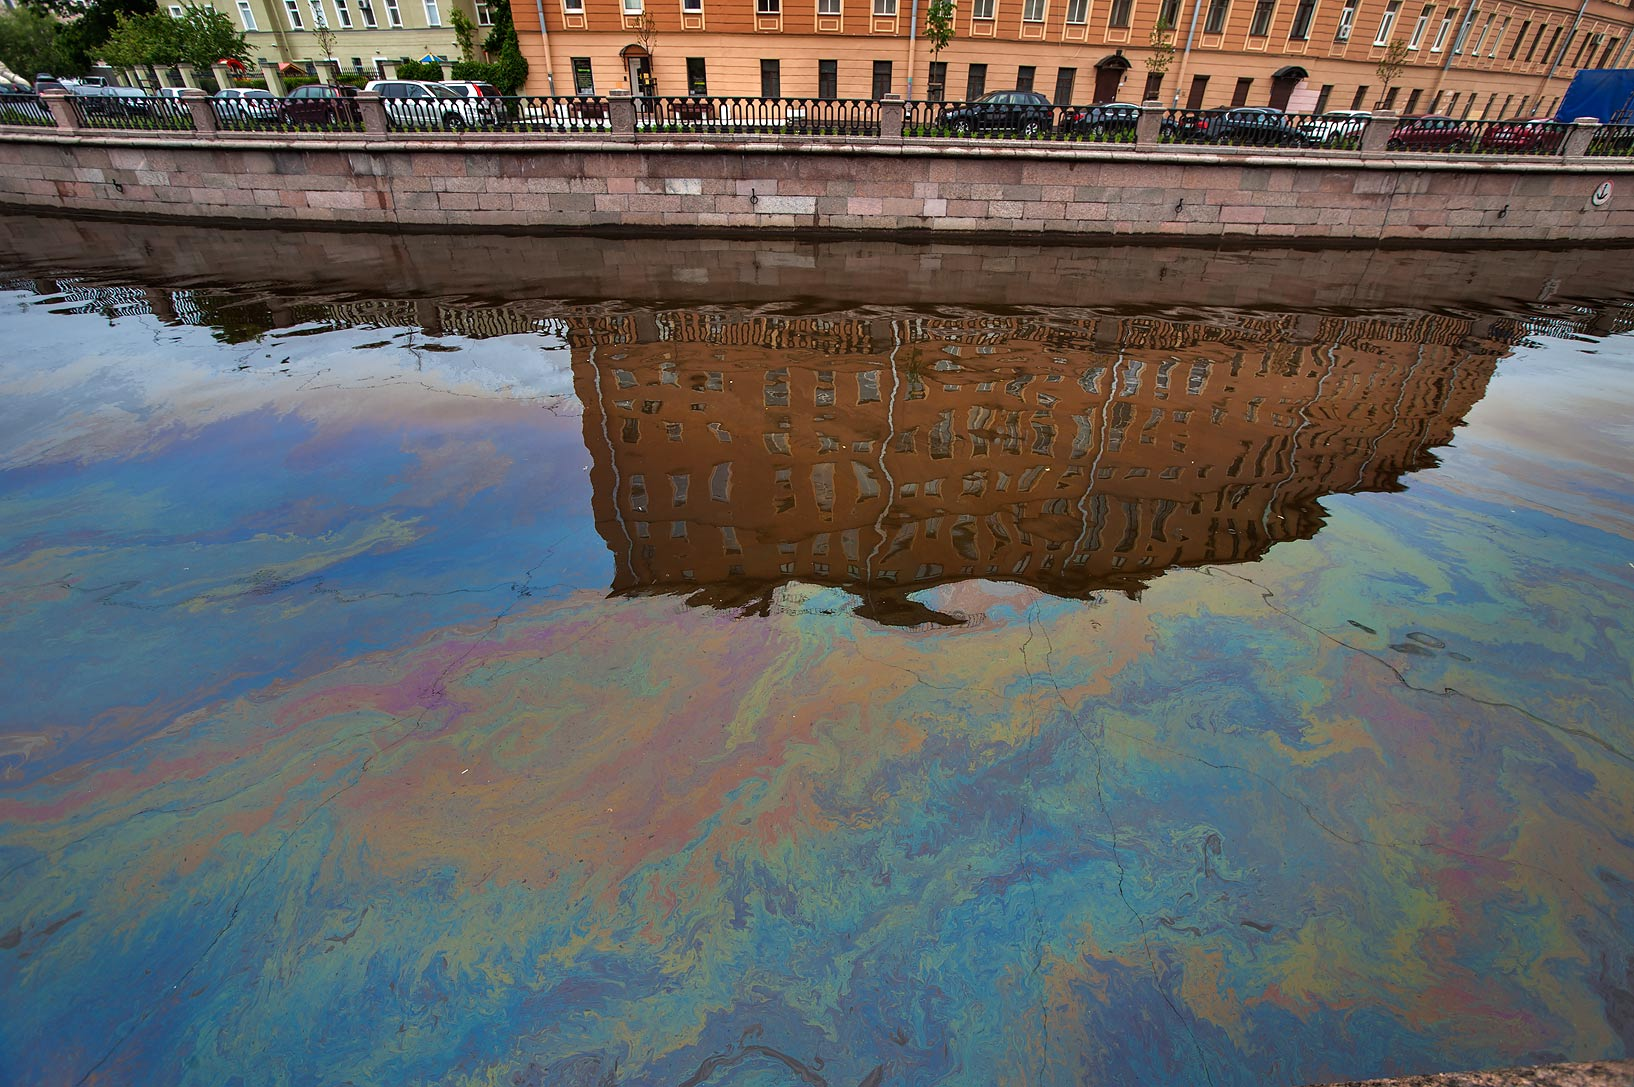 Iridescent oil film on the surface Griboedova Canal. St.Petersburg, Russia